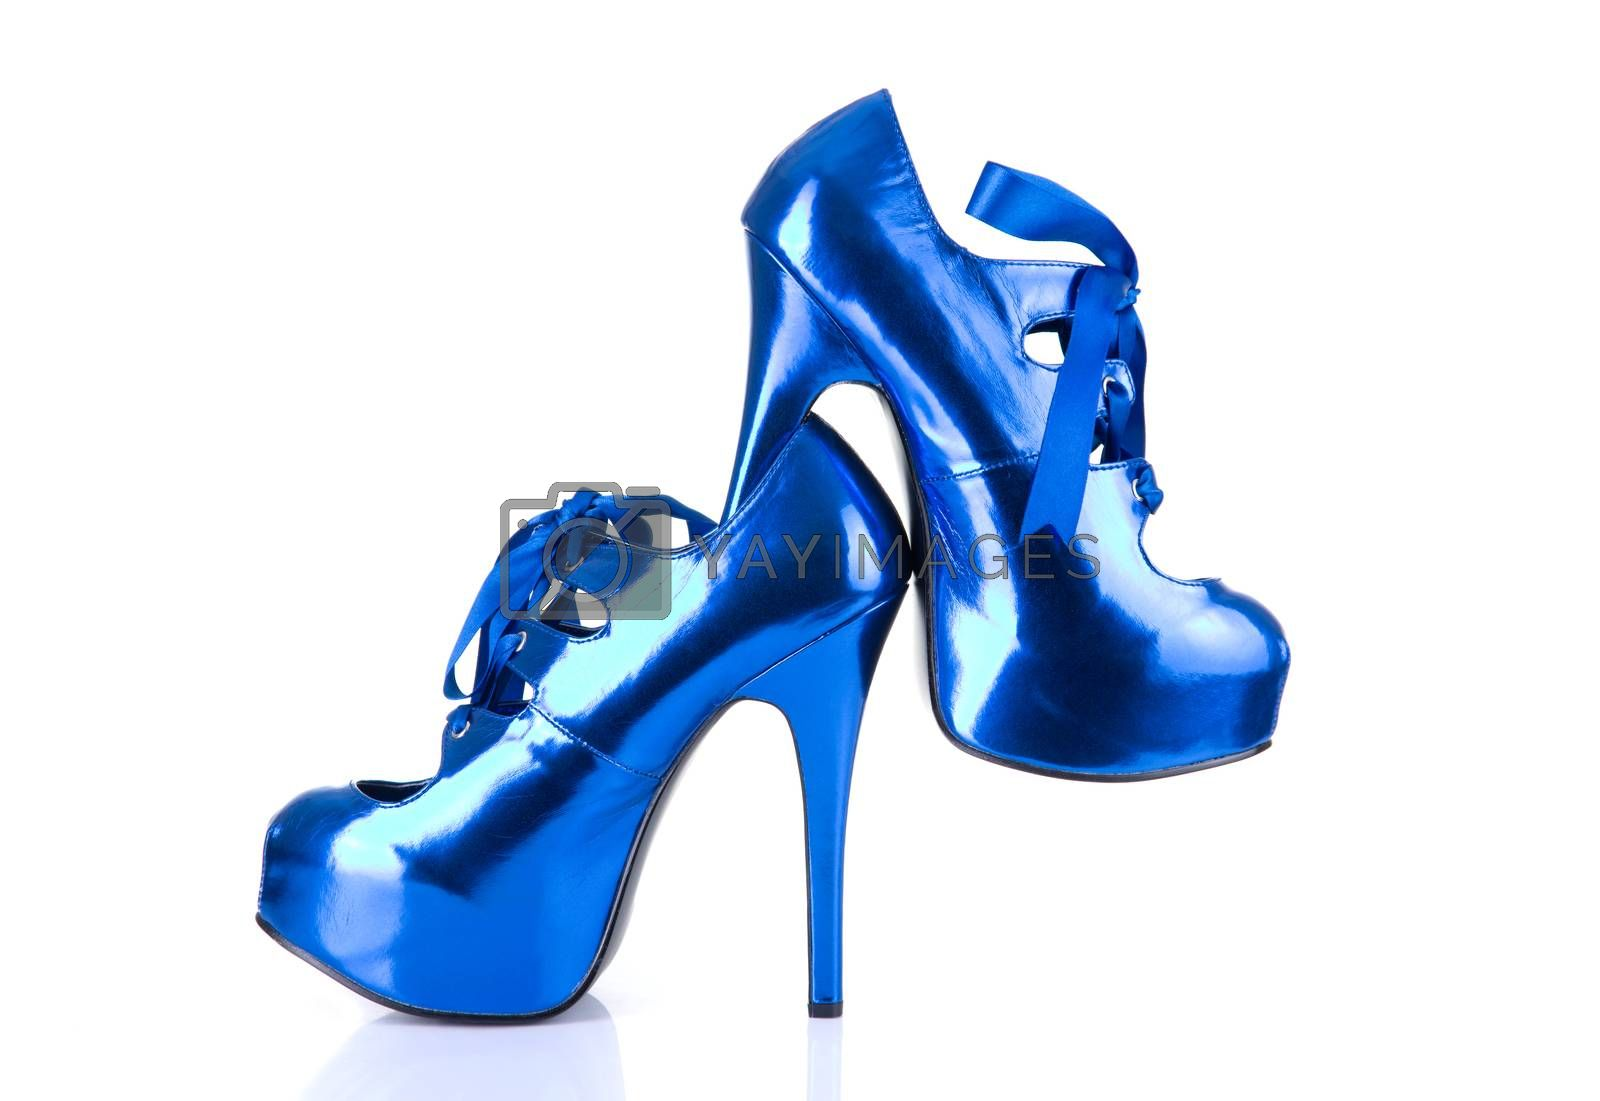 High heels metallic blue female shoes, isolated on white background with natural reflection